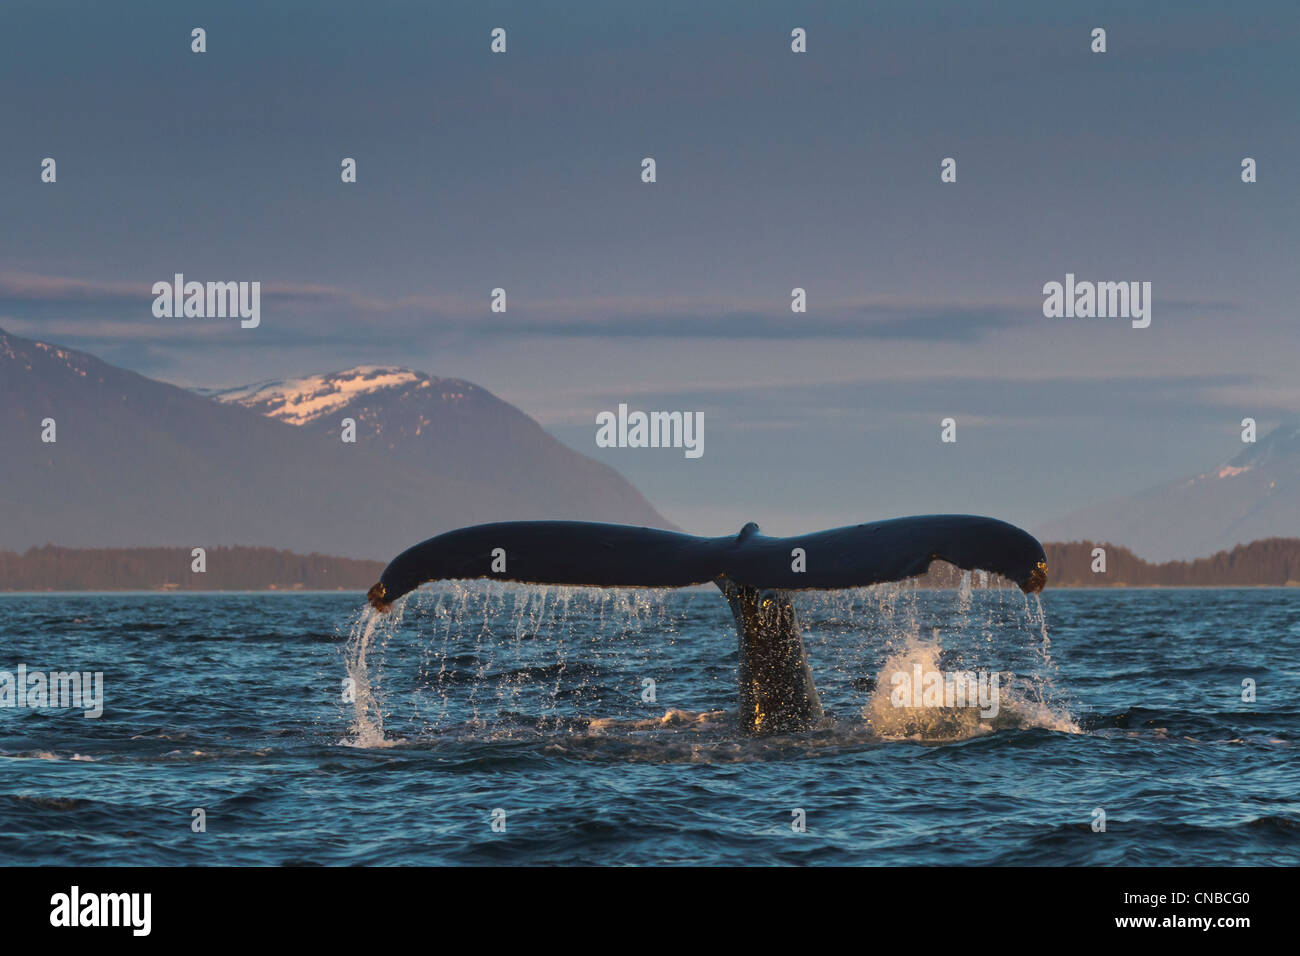 Close up of a Humpback Whale tale dripping water as the whale dives in Lynn Canal, Southeast Alaska, Summer - Stock Image